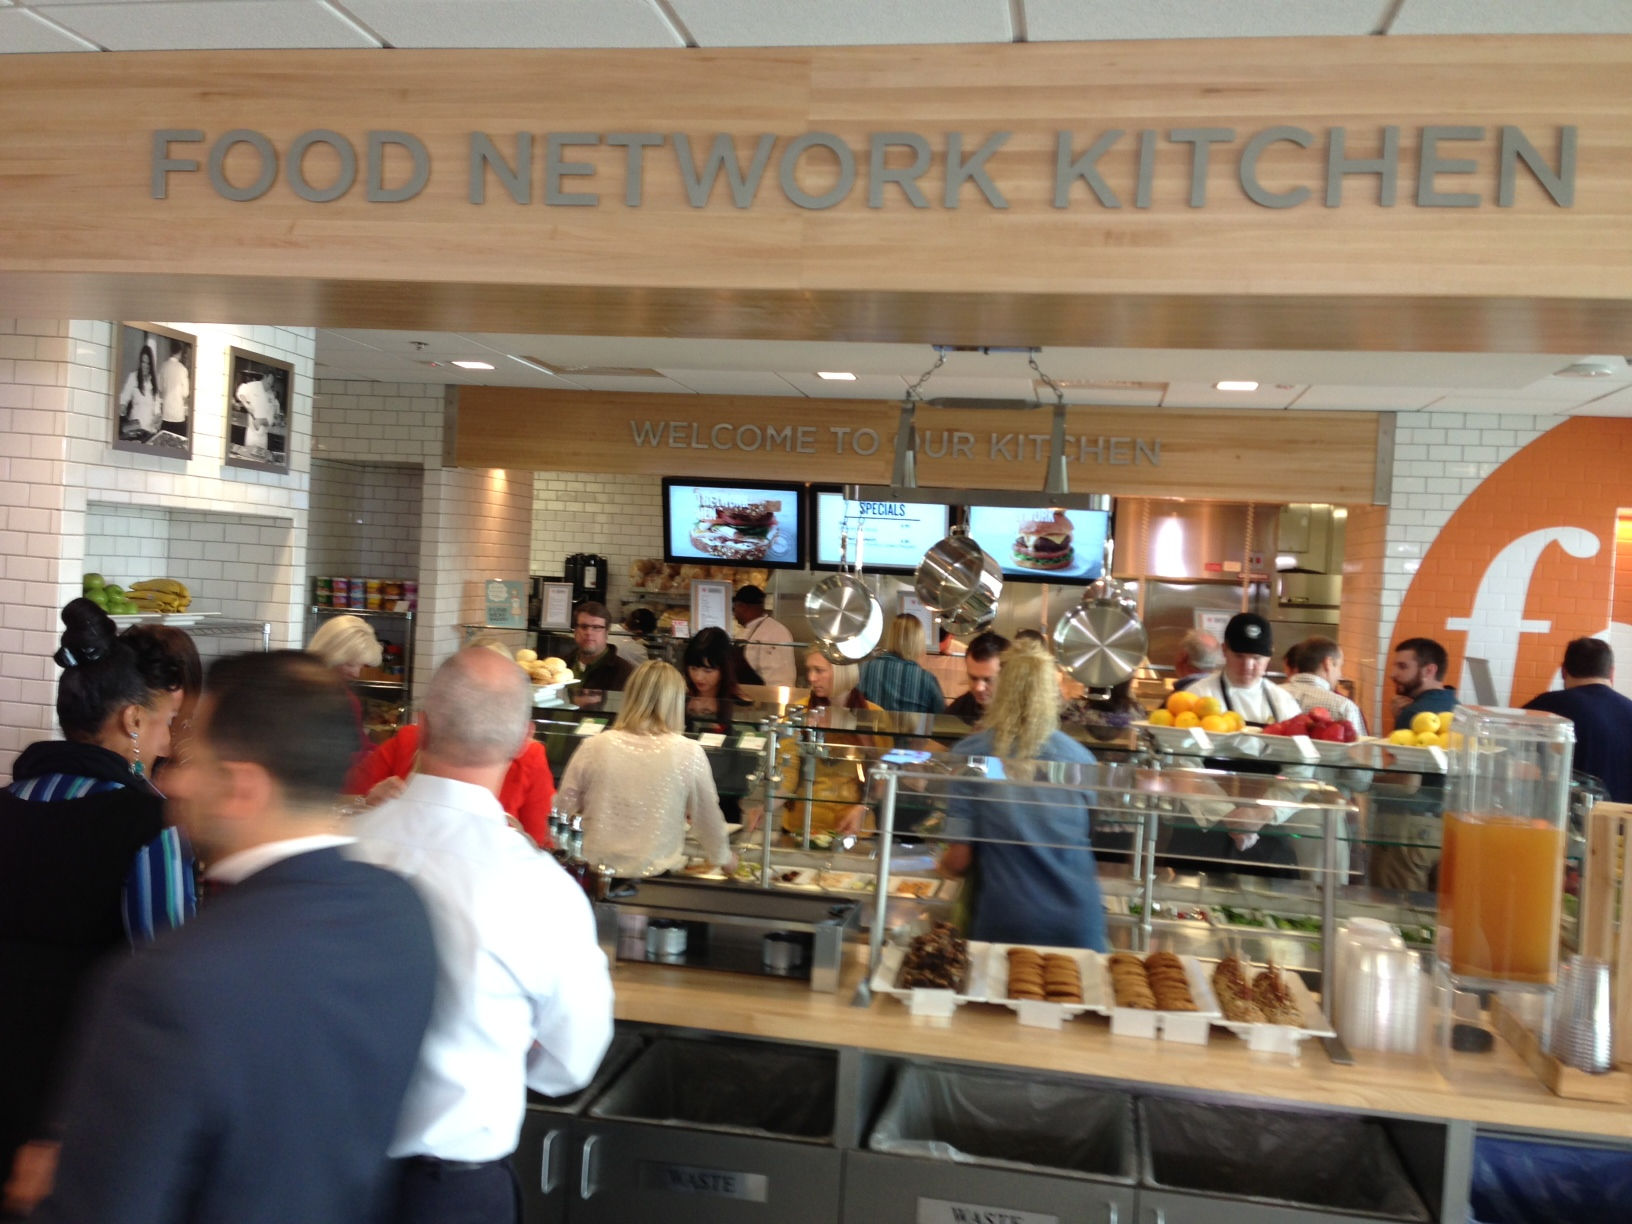 Food Network Kitchen in Knoxville, TN